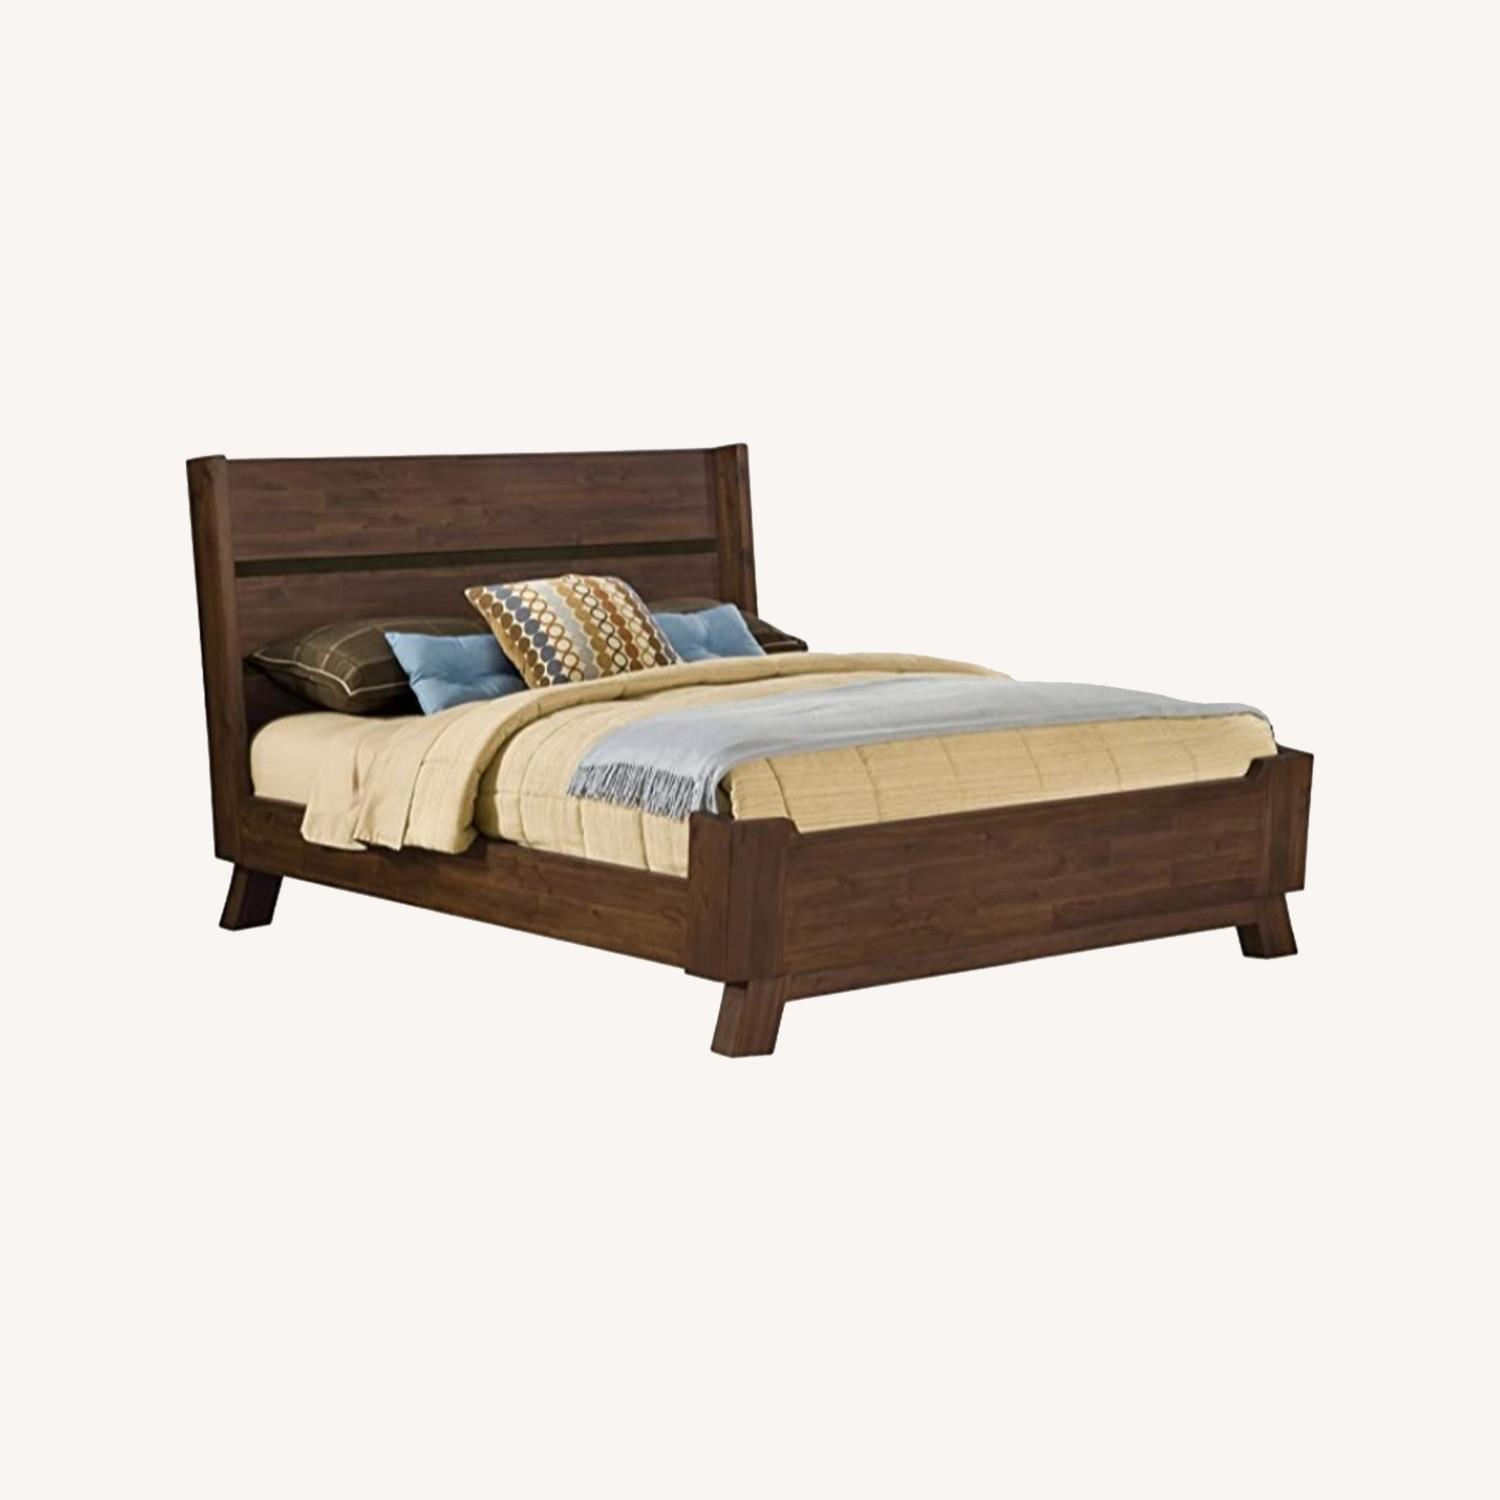 Modus Furniture Solid Wood Queen Bed - image-0